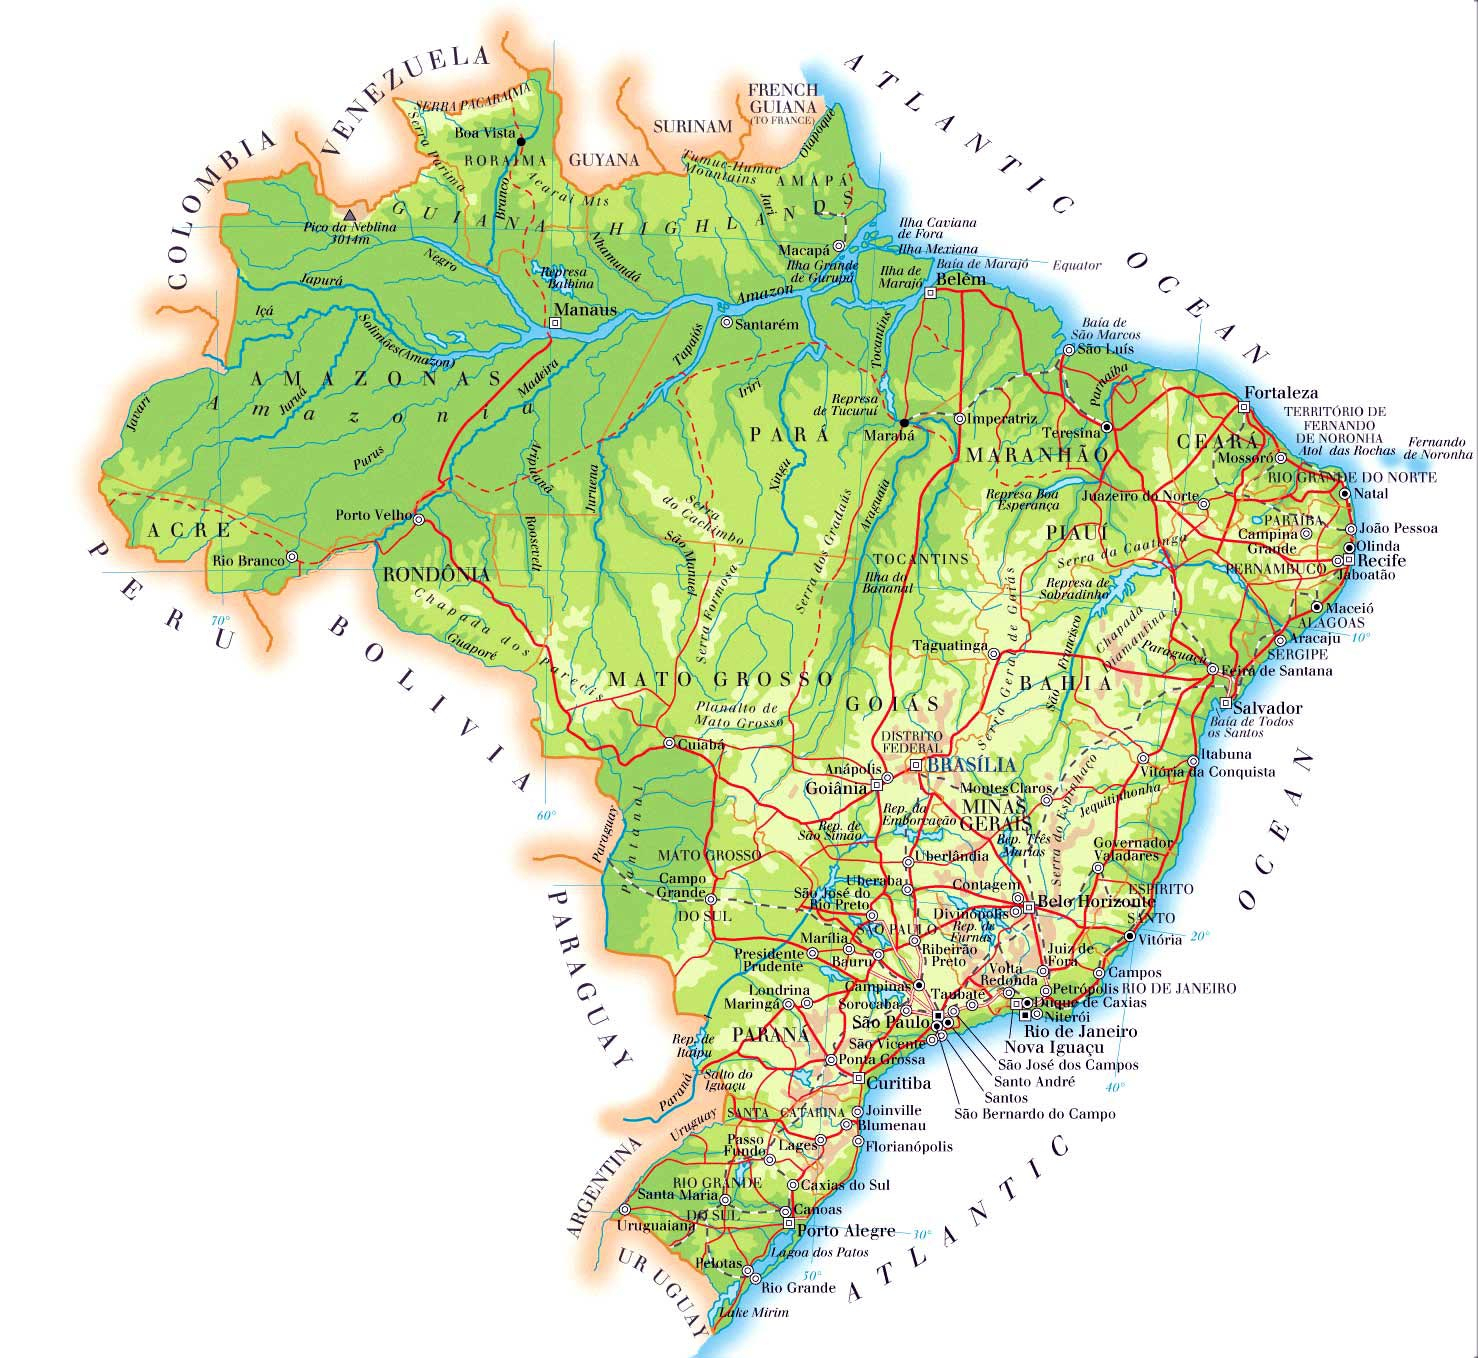 Brazil Map Best Maps Of Printable Map Of Brazil - Tuquyhai - Free Printable Map Of Brazil